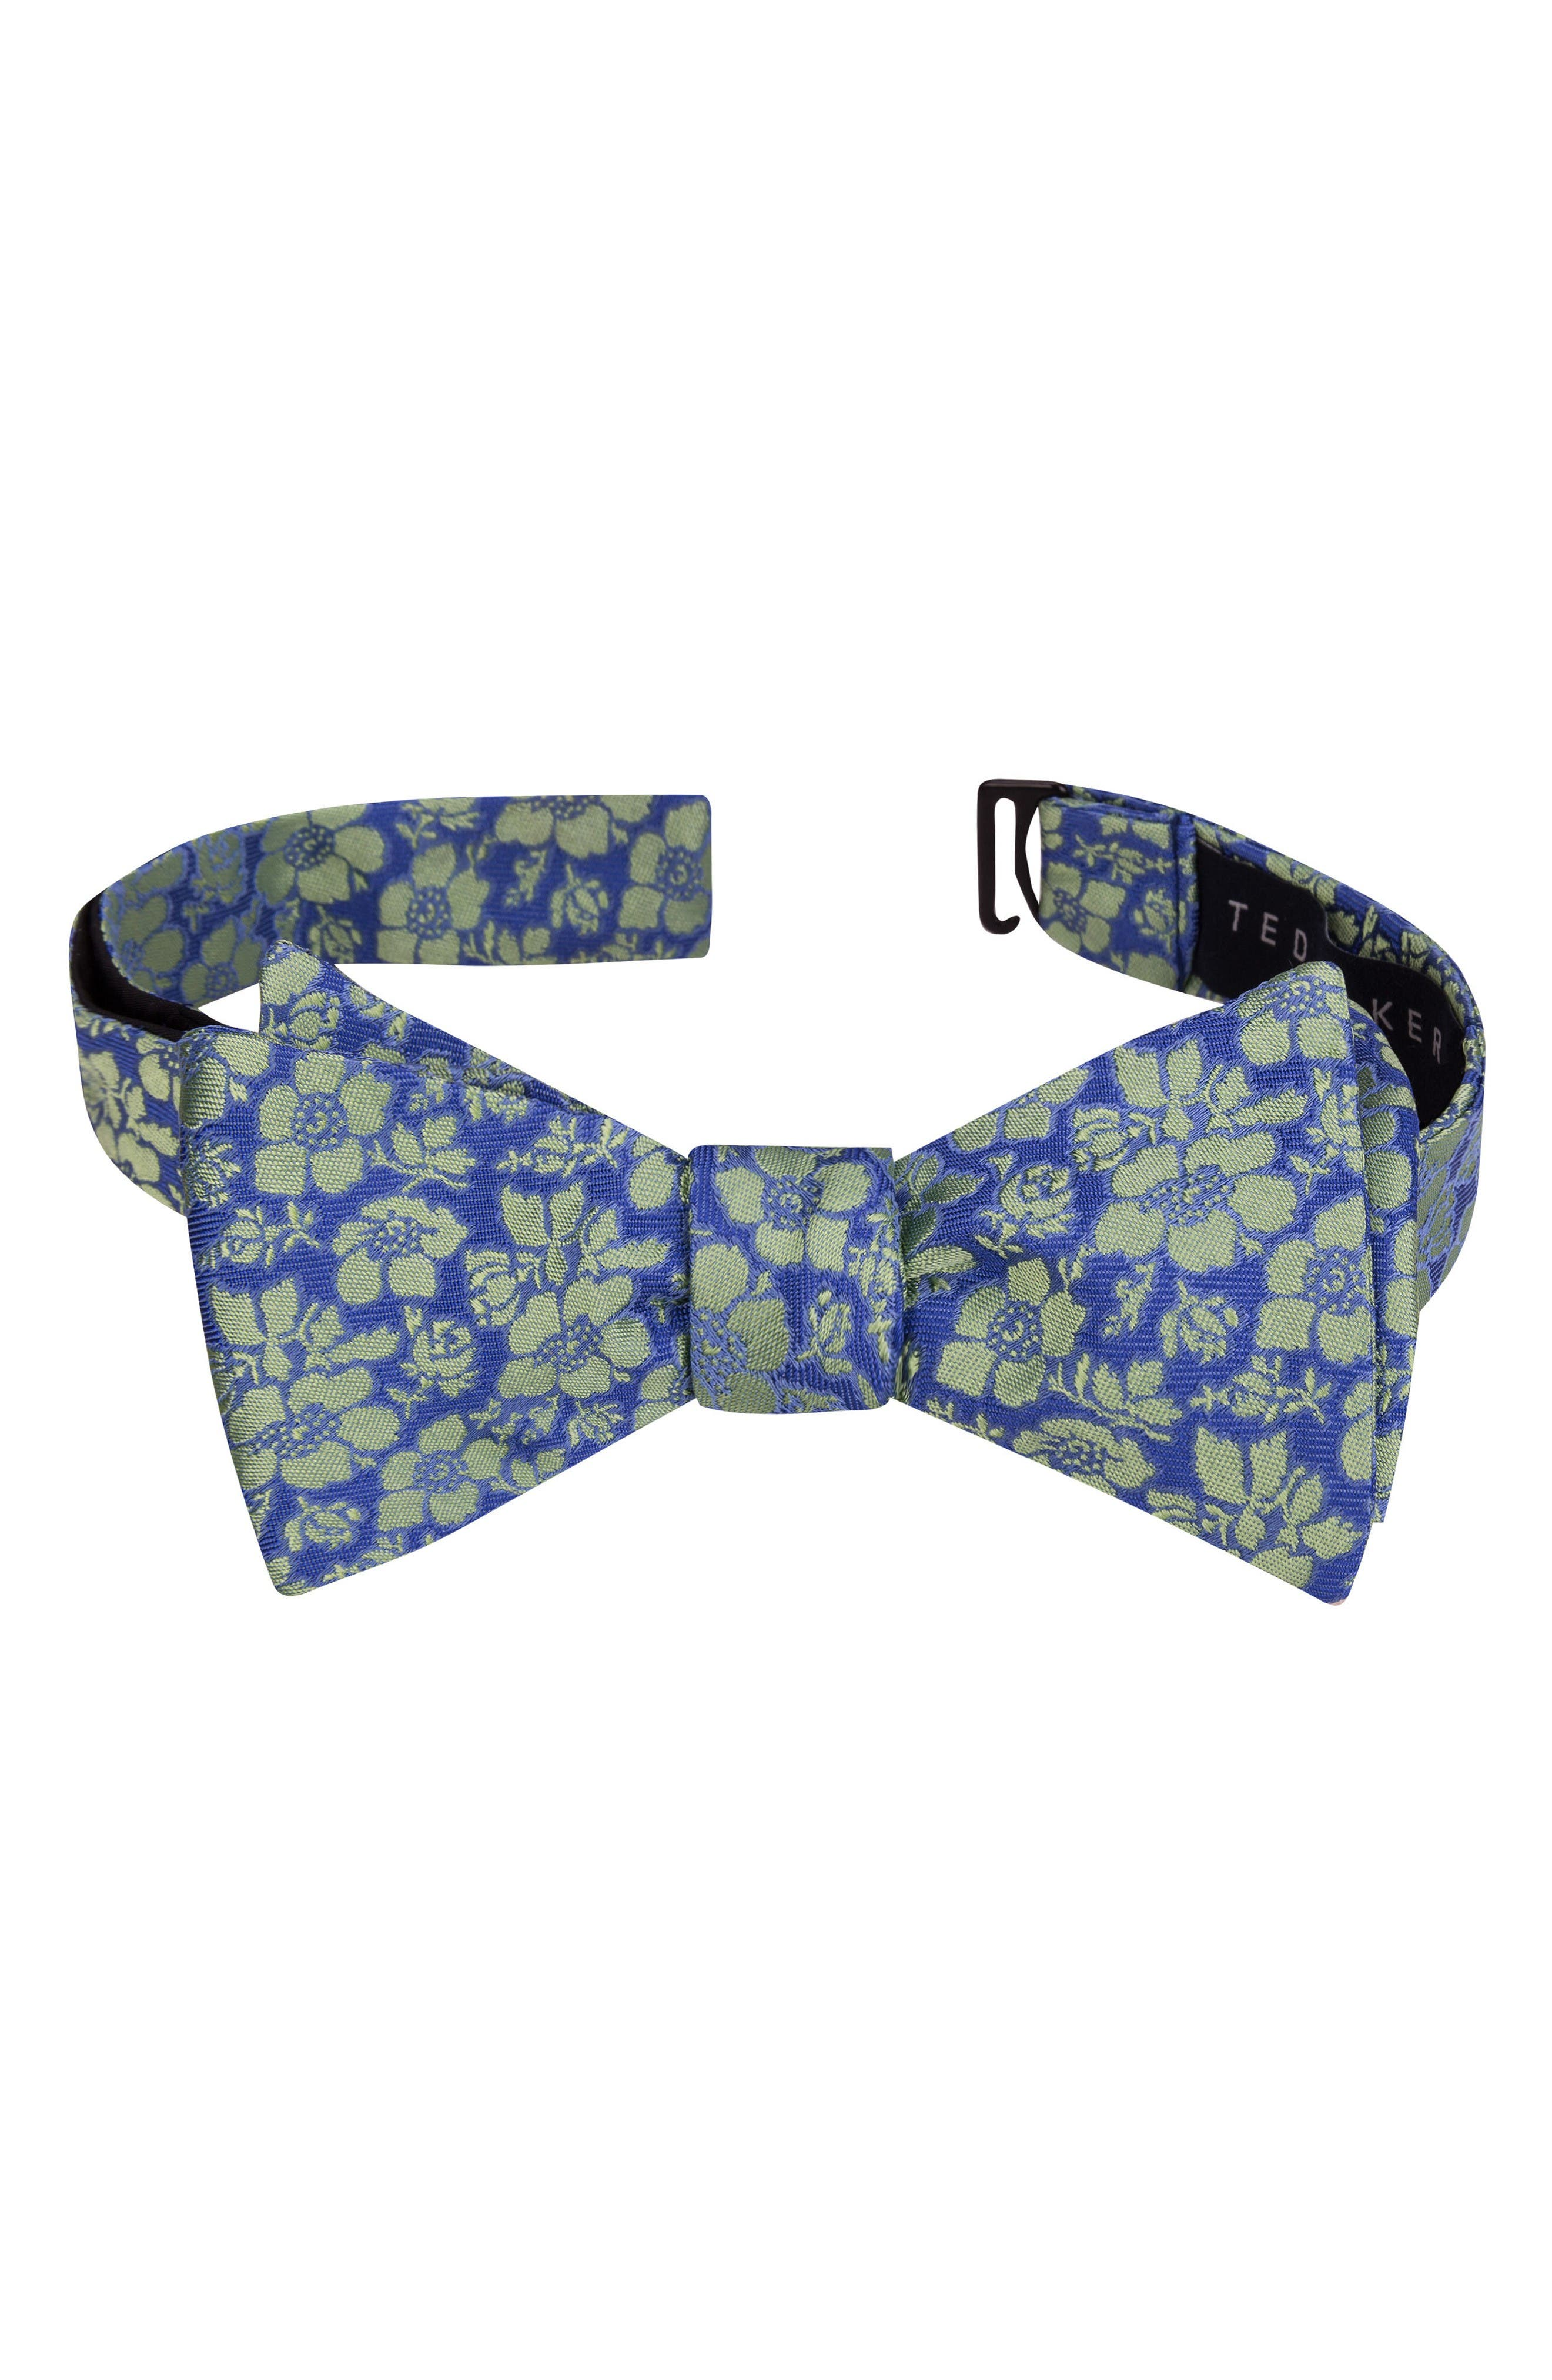 TED BAKER LONDON Picadilly Floral Silk Bow Tie